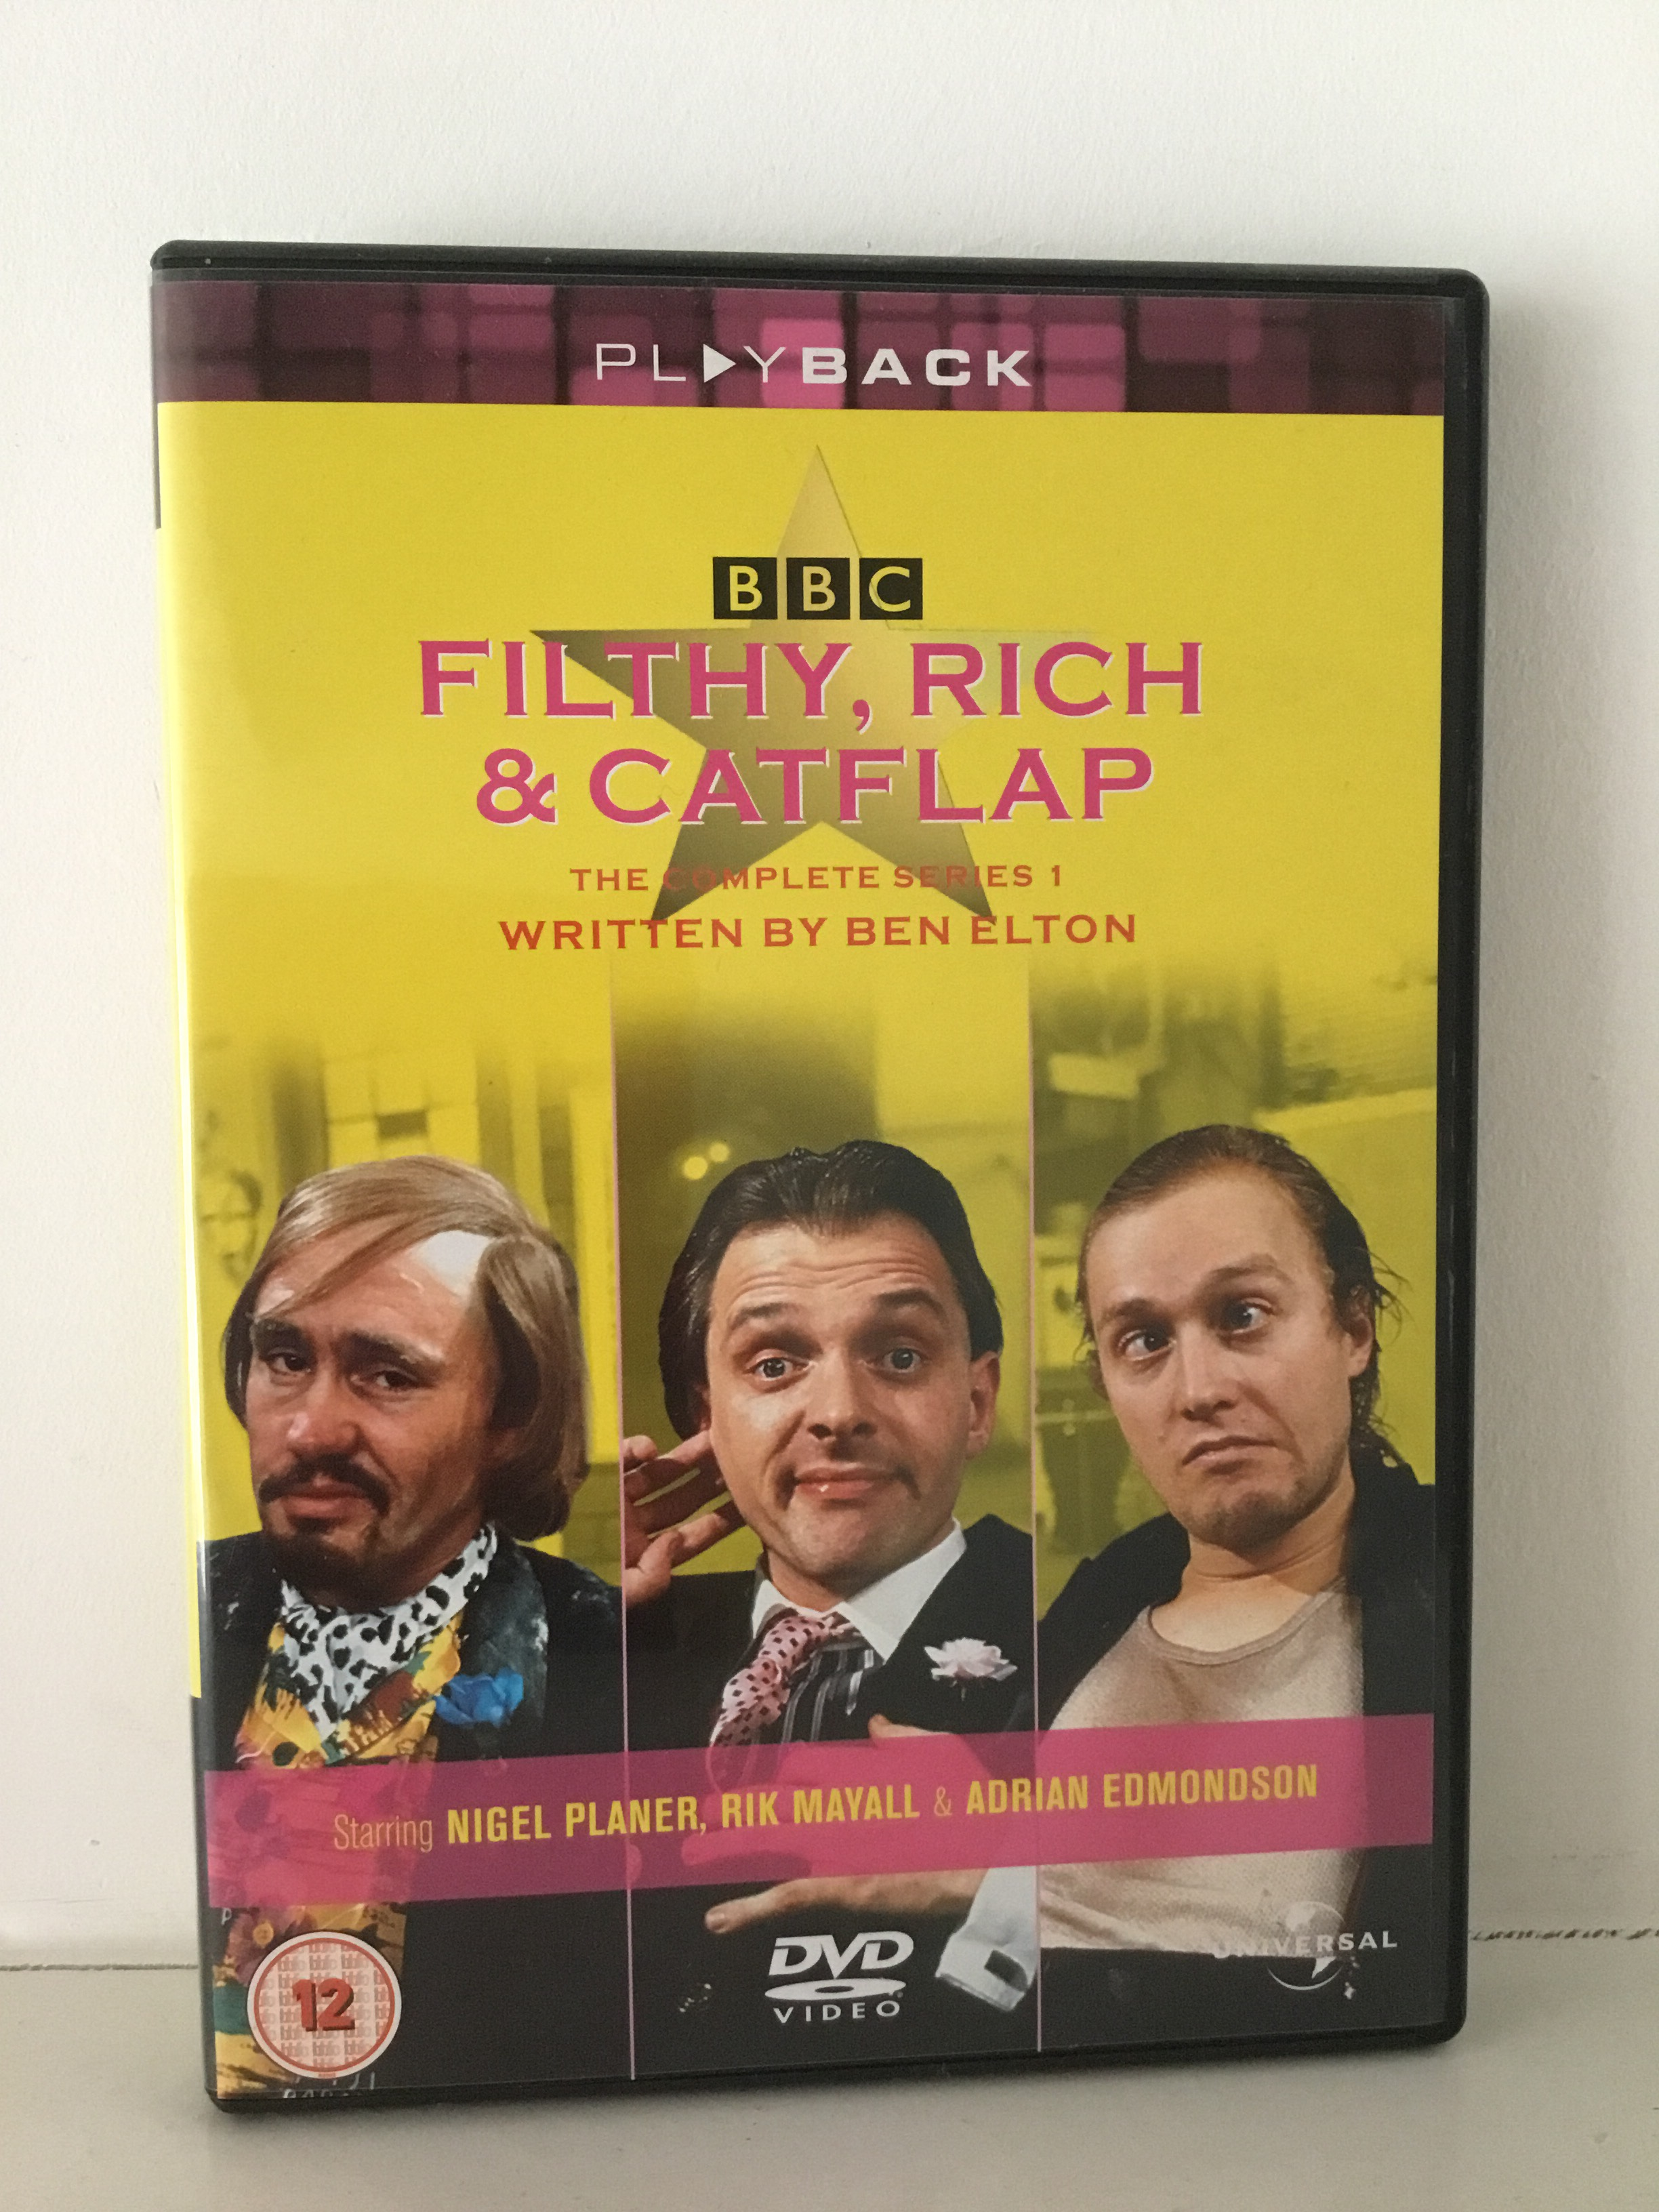 VHS/DVDs, Filthy Rich and Catflap dvd.